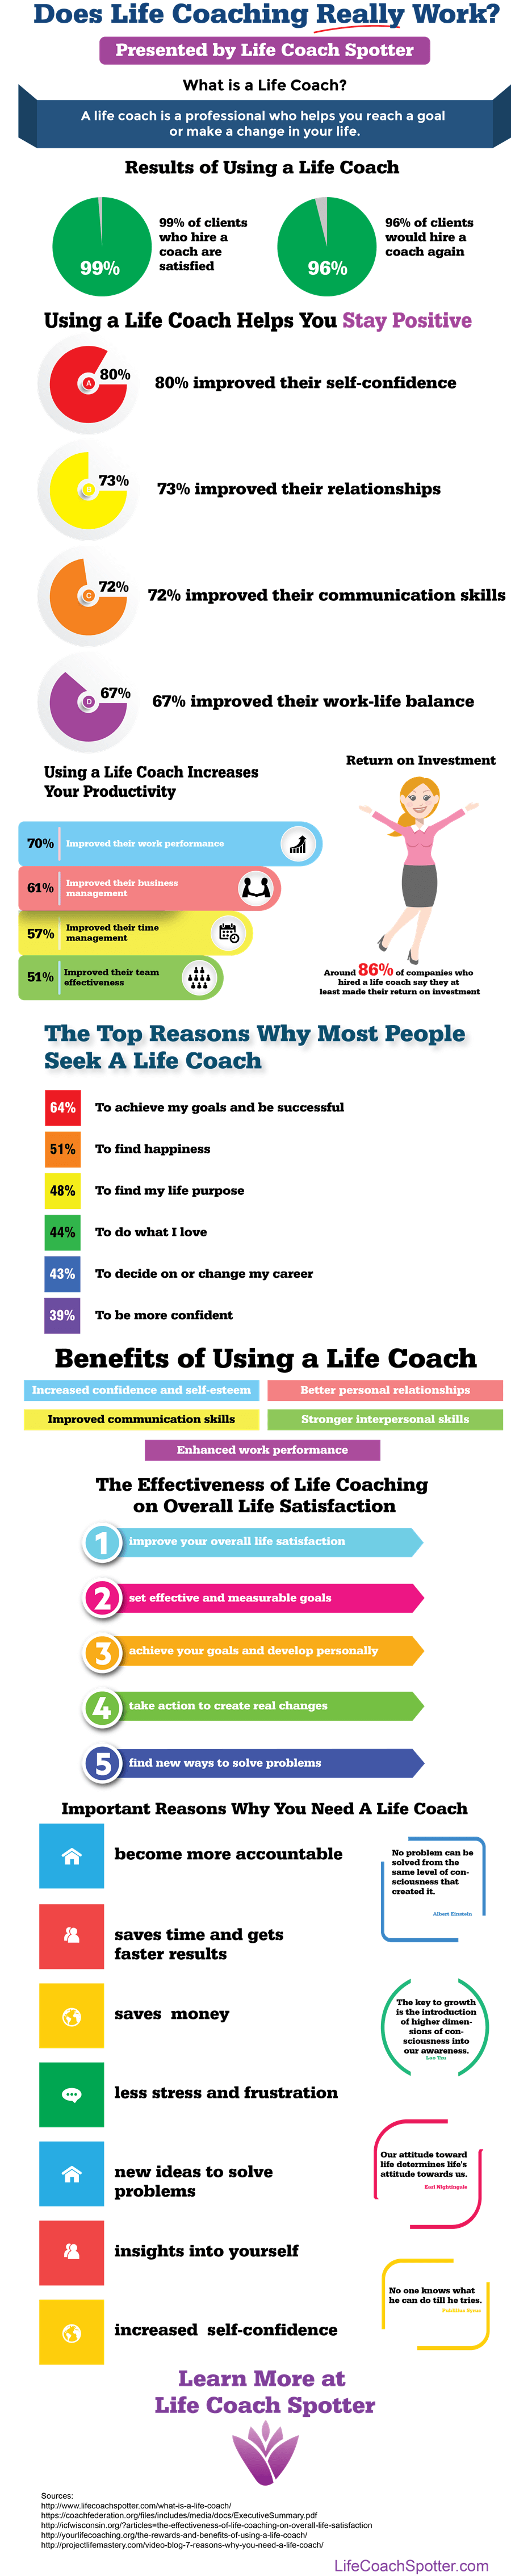 does-life-coaching-really-work-5